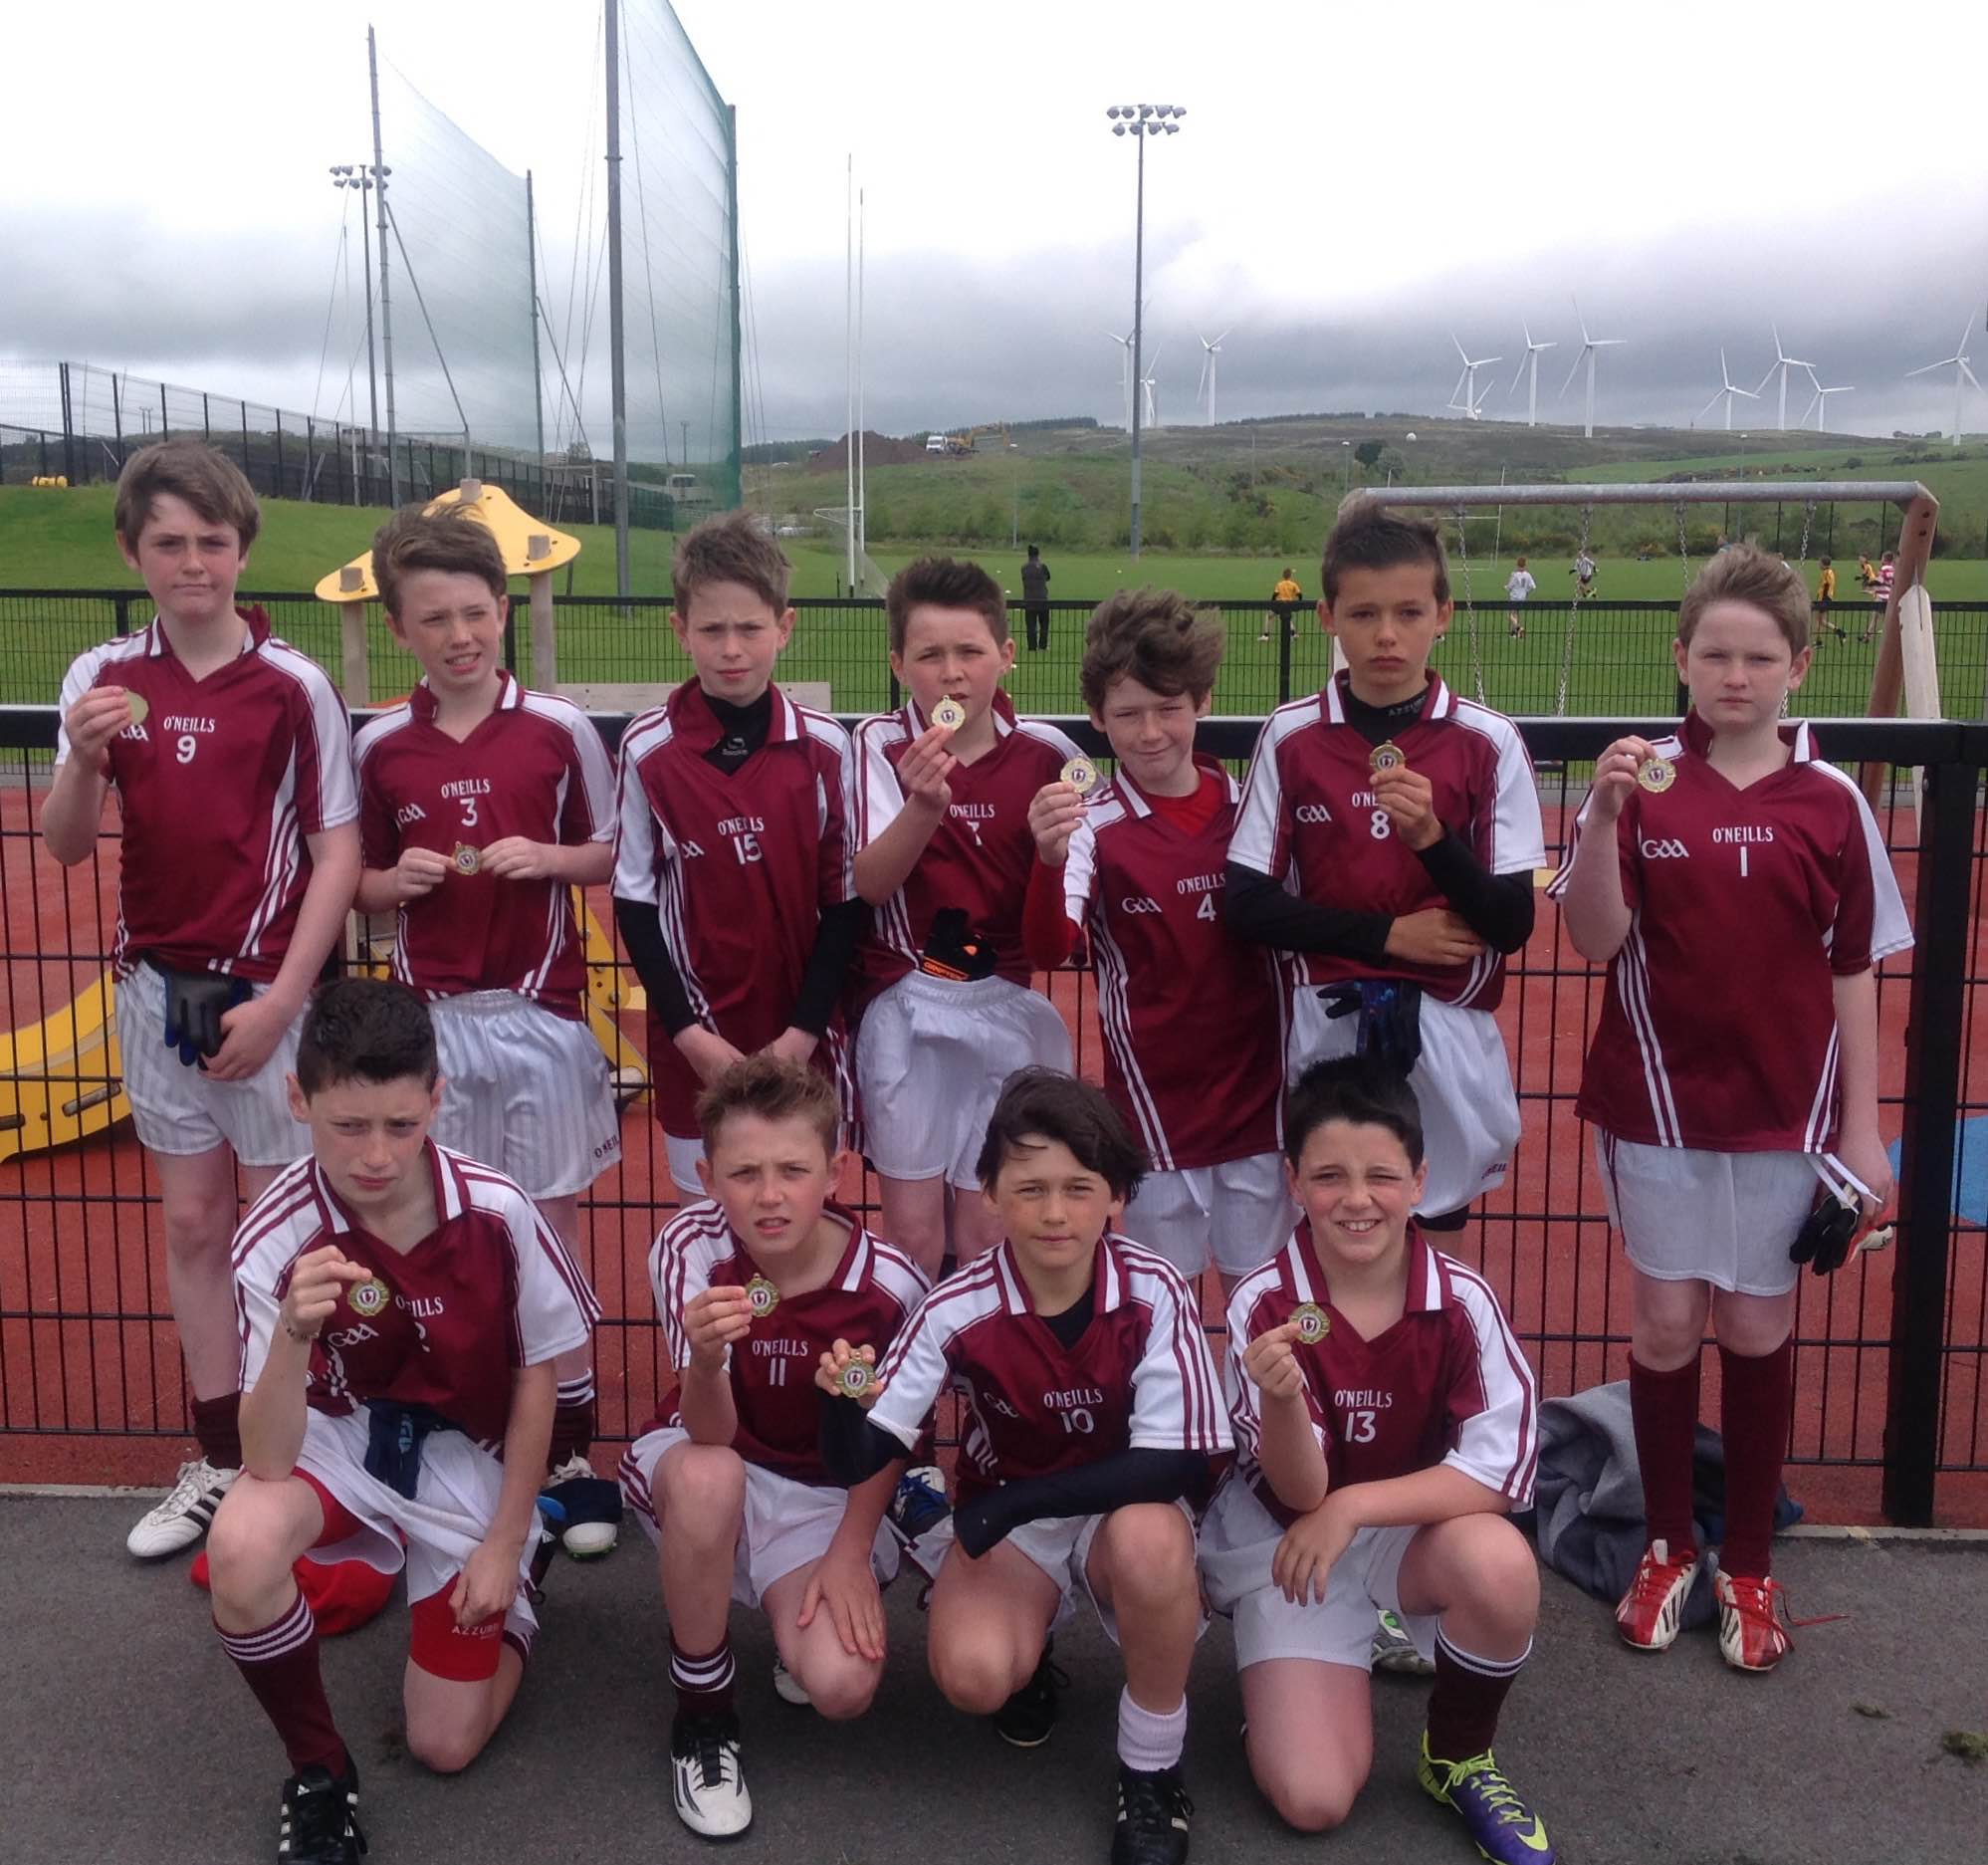 Allianz Cumann na mBunscol Tyrone Finals Day 2015